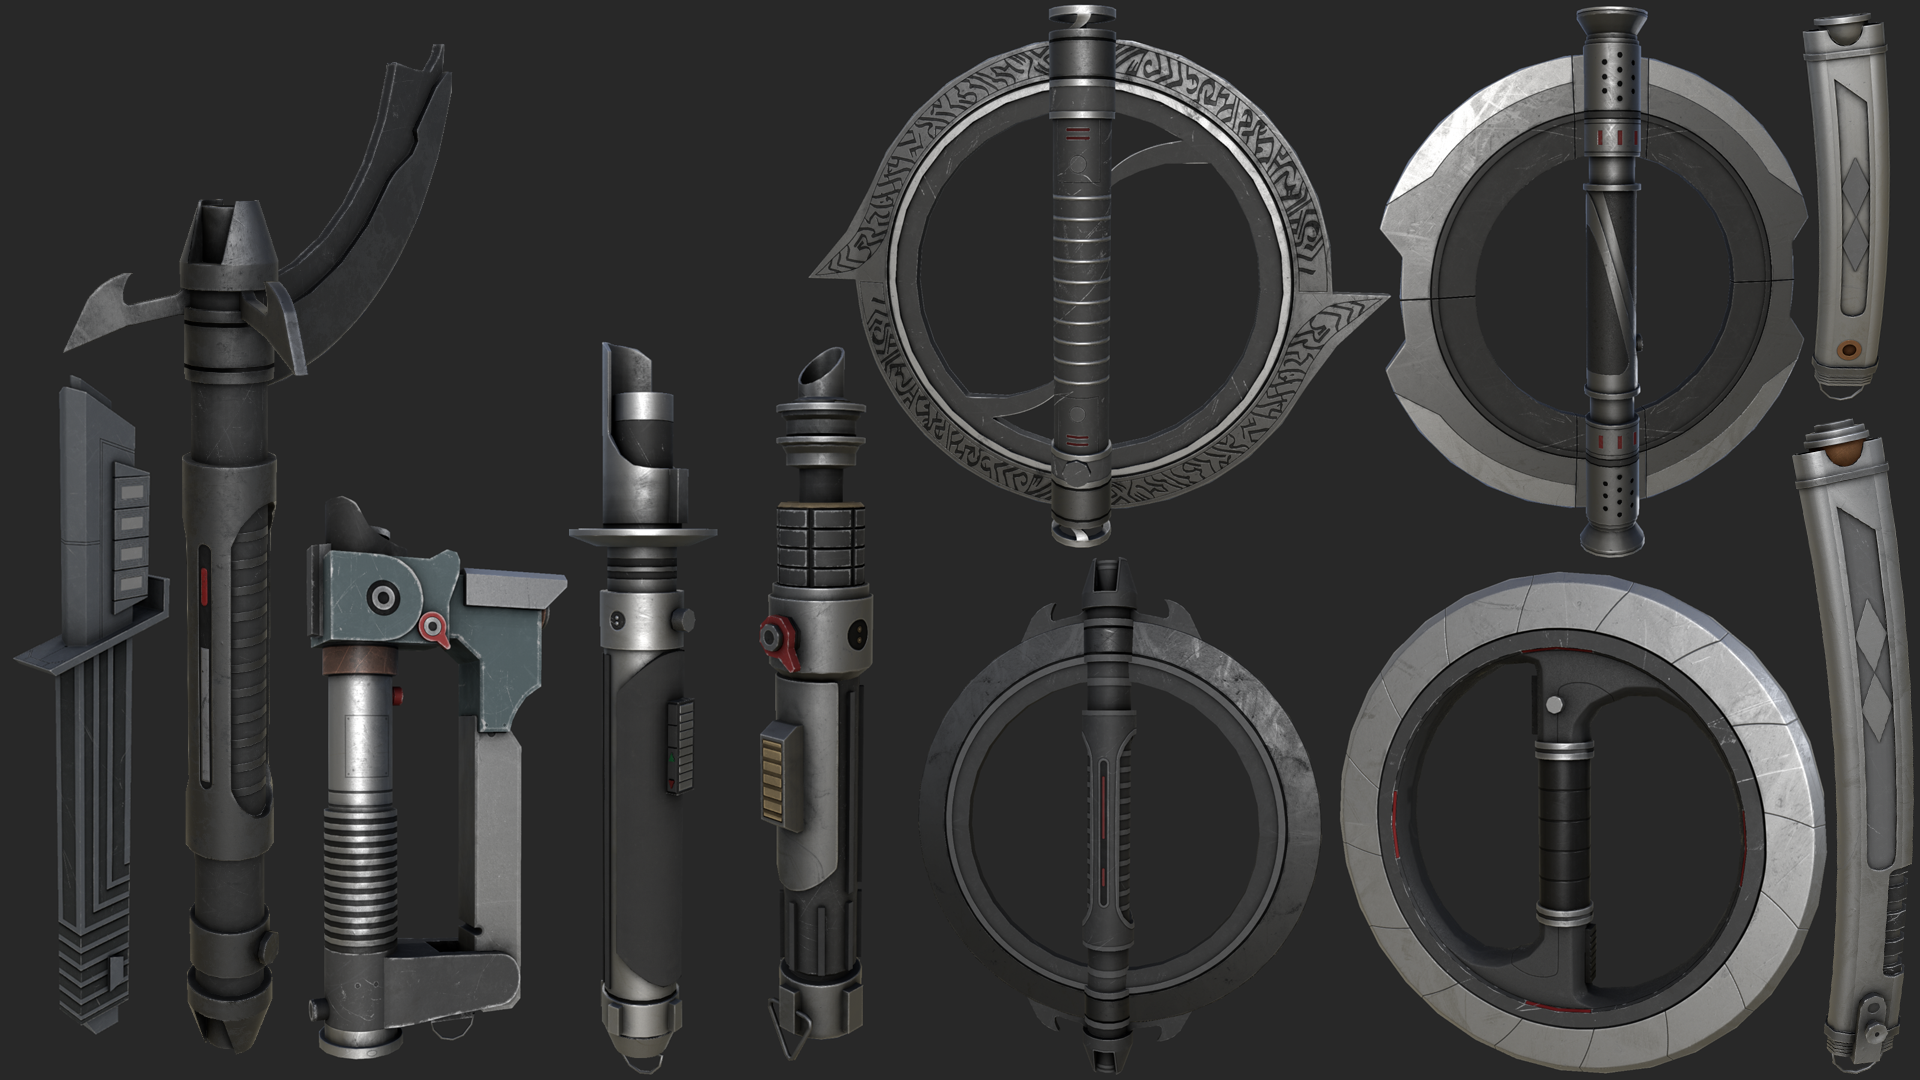 Lightsaber Hilt Collection Lightsabers Melee Jkhub While lightsabers from star wars legends may be referenced, they were not given entries. lightsaber hilt collection